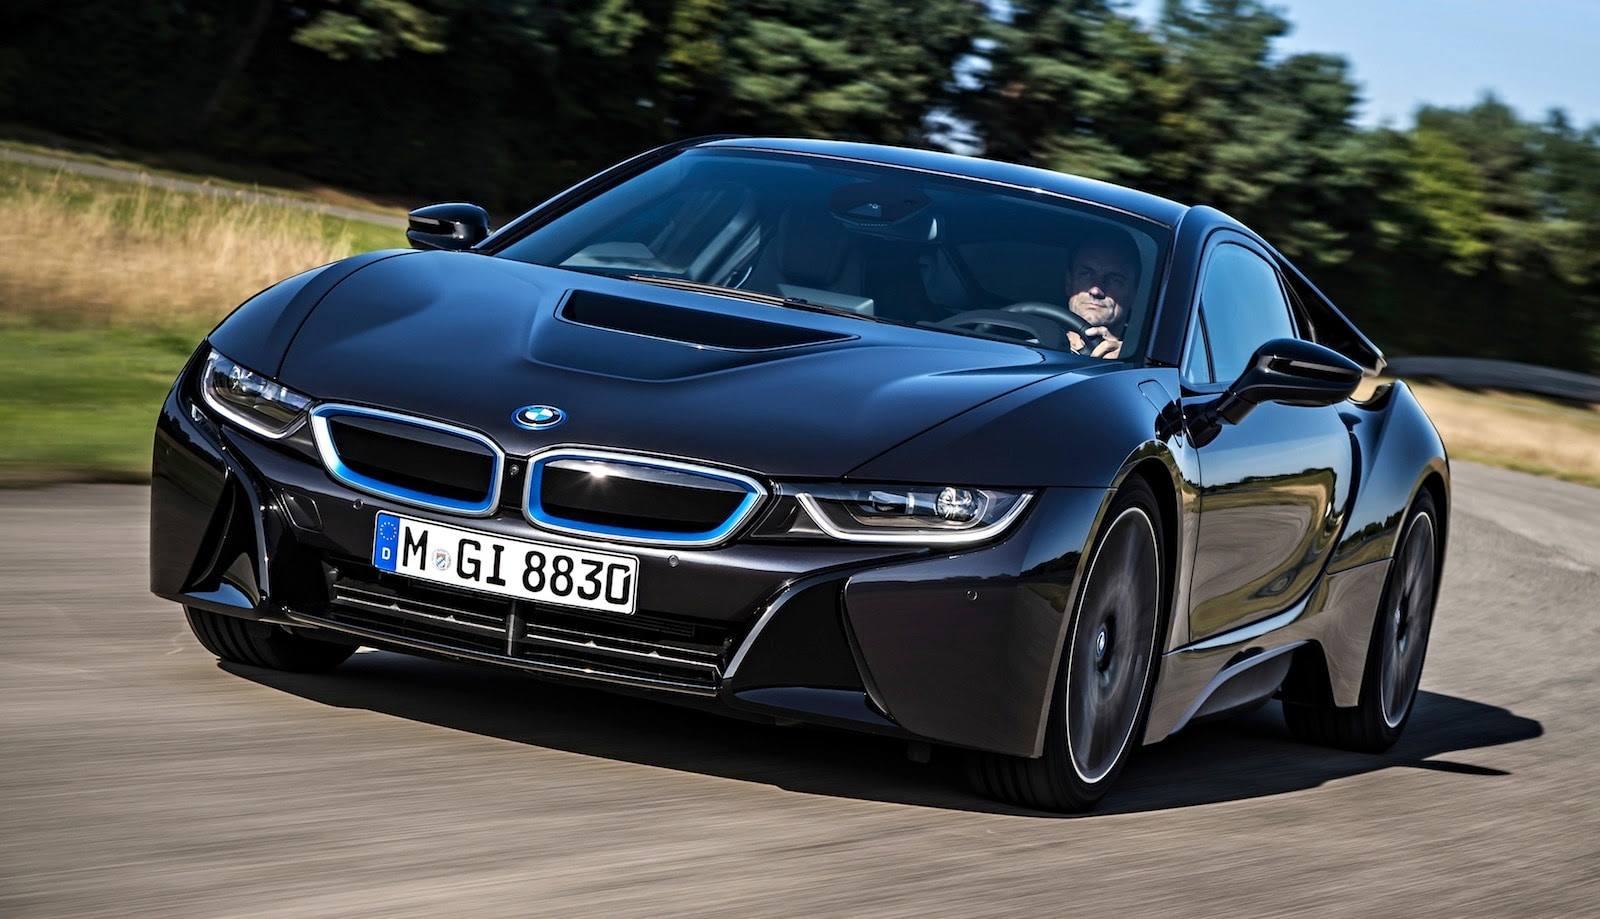 BMW I8 India Price Review Images BMW Cars Car Wallpaper